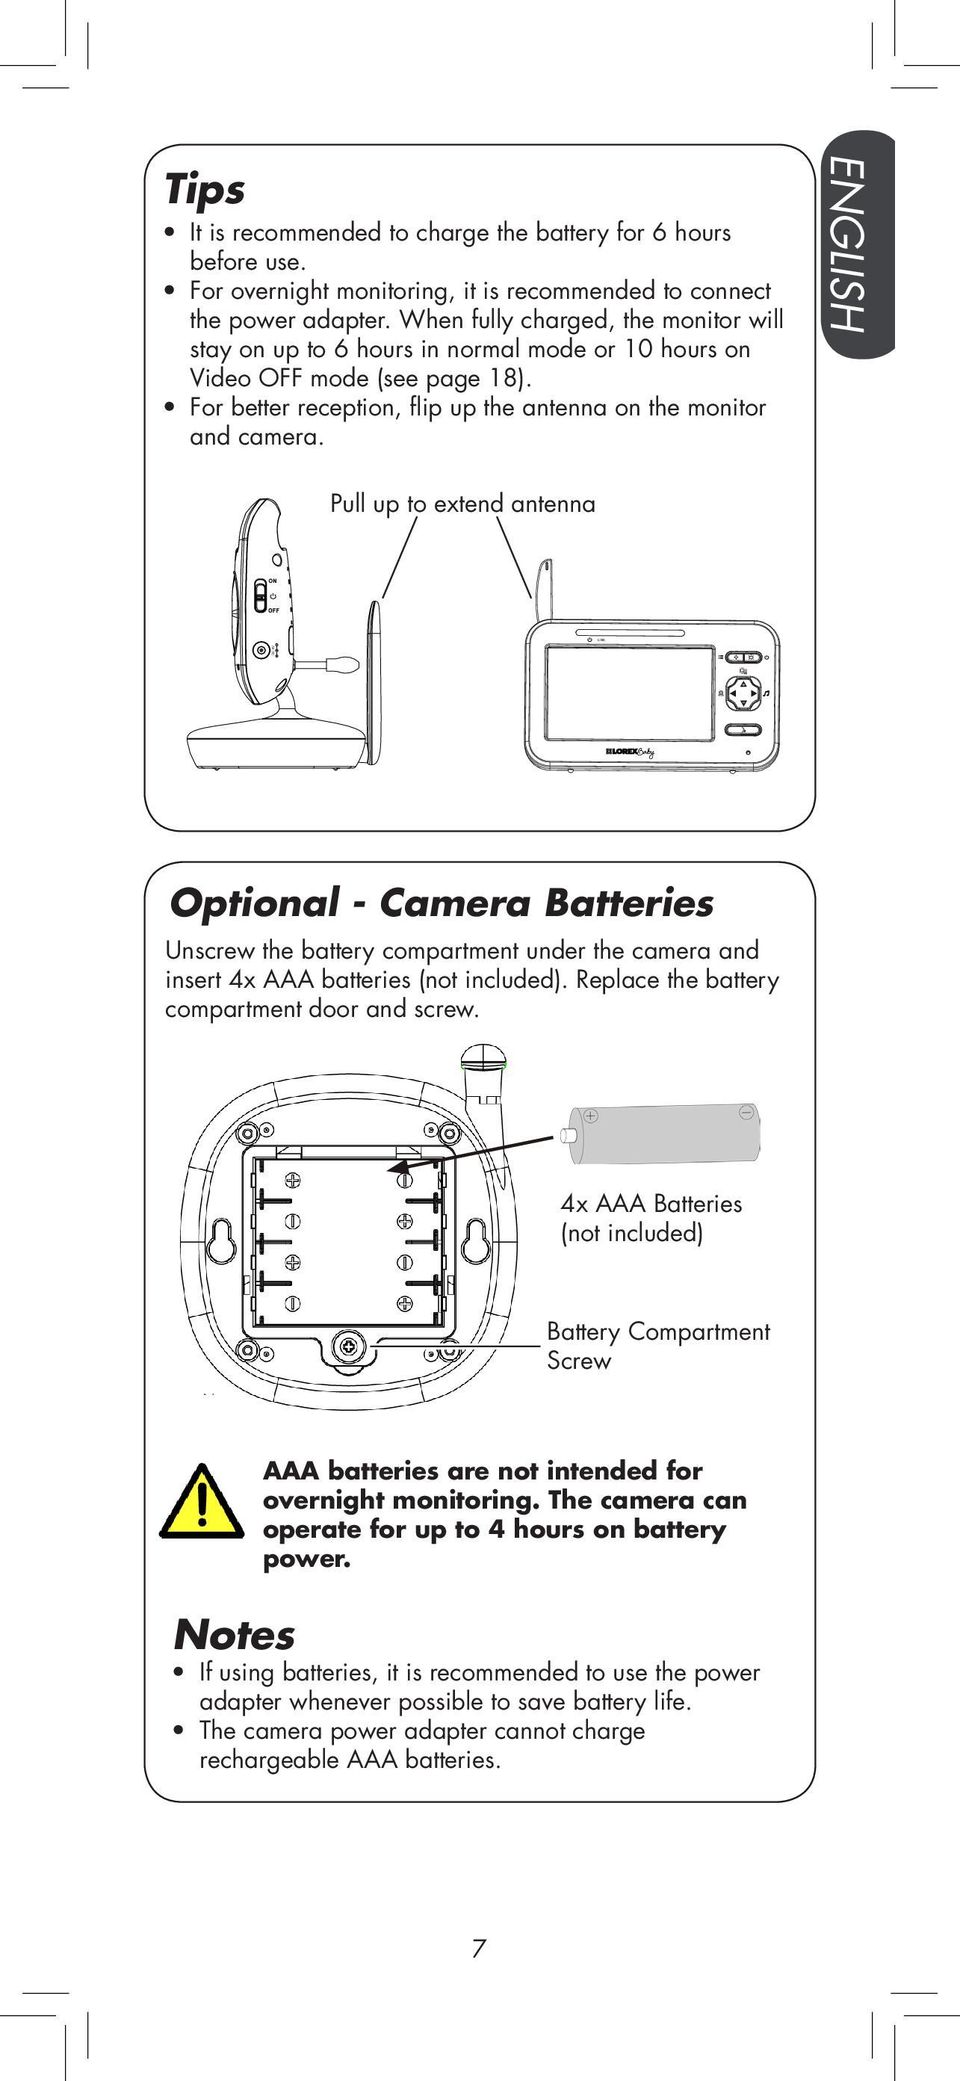 ENGLISH Pull up to extend antenna DC 6V Optional - Camera Batteries Unscrew the battery compartment under the camera and insert 4x AAA batteries (not included).